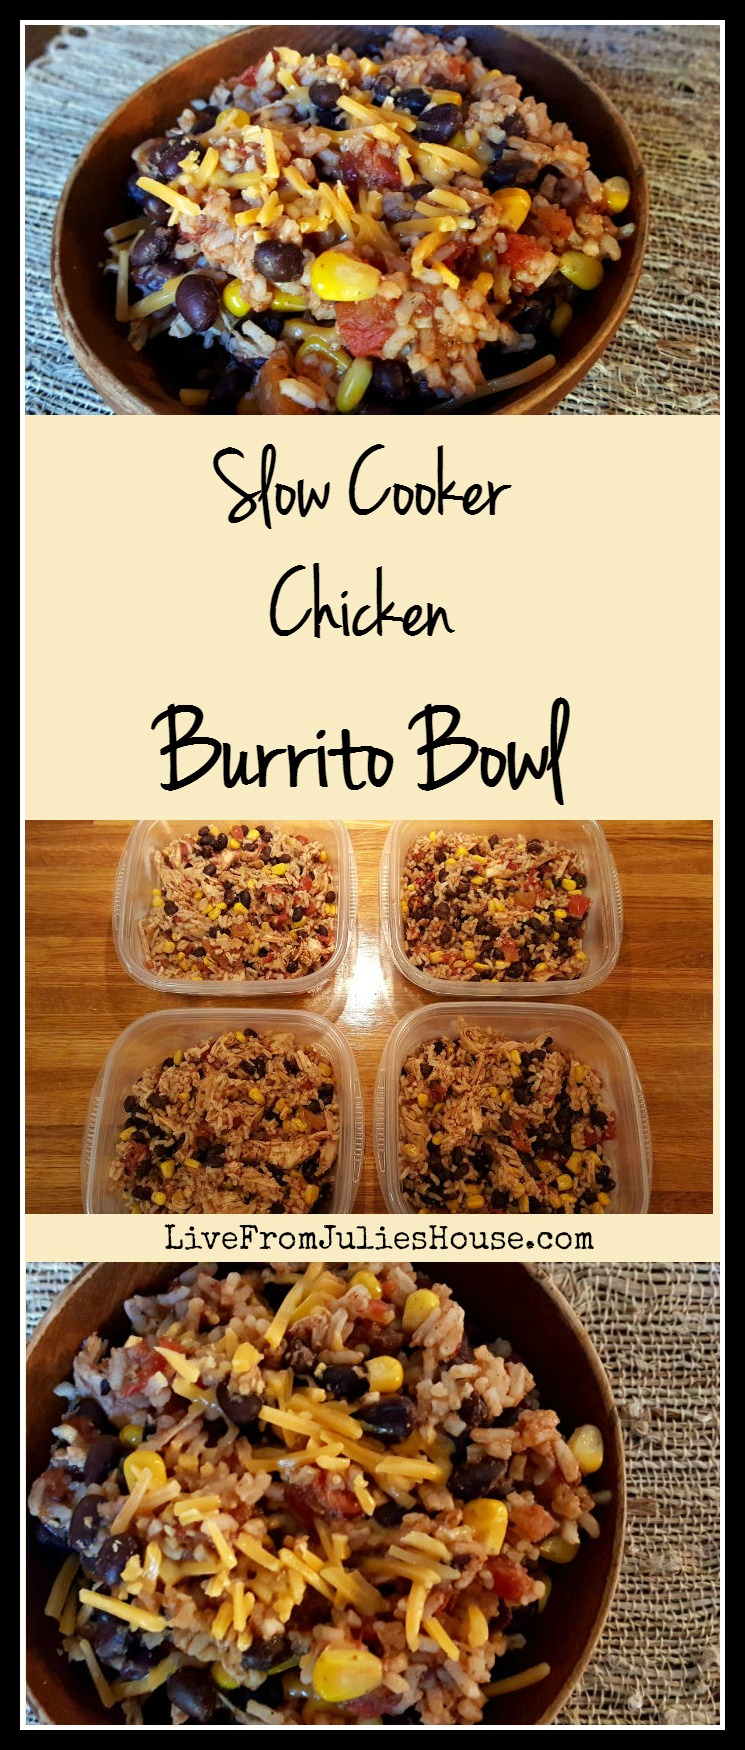 Slow Cooker Chicken Burrito Bowls - These delicious Slow Cooker Chicken Burrito Bowls are the perfect make-ahead lunch - simple and tasty, plus your slow cooker does all the work.